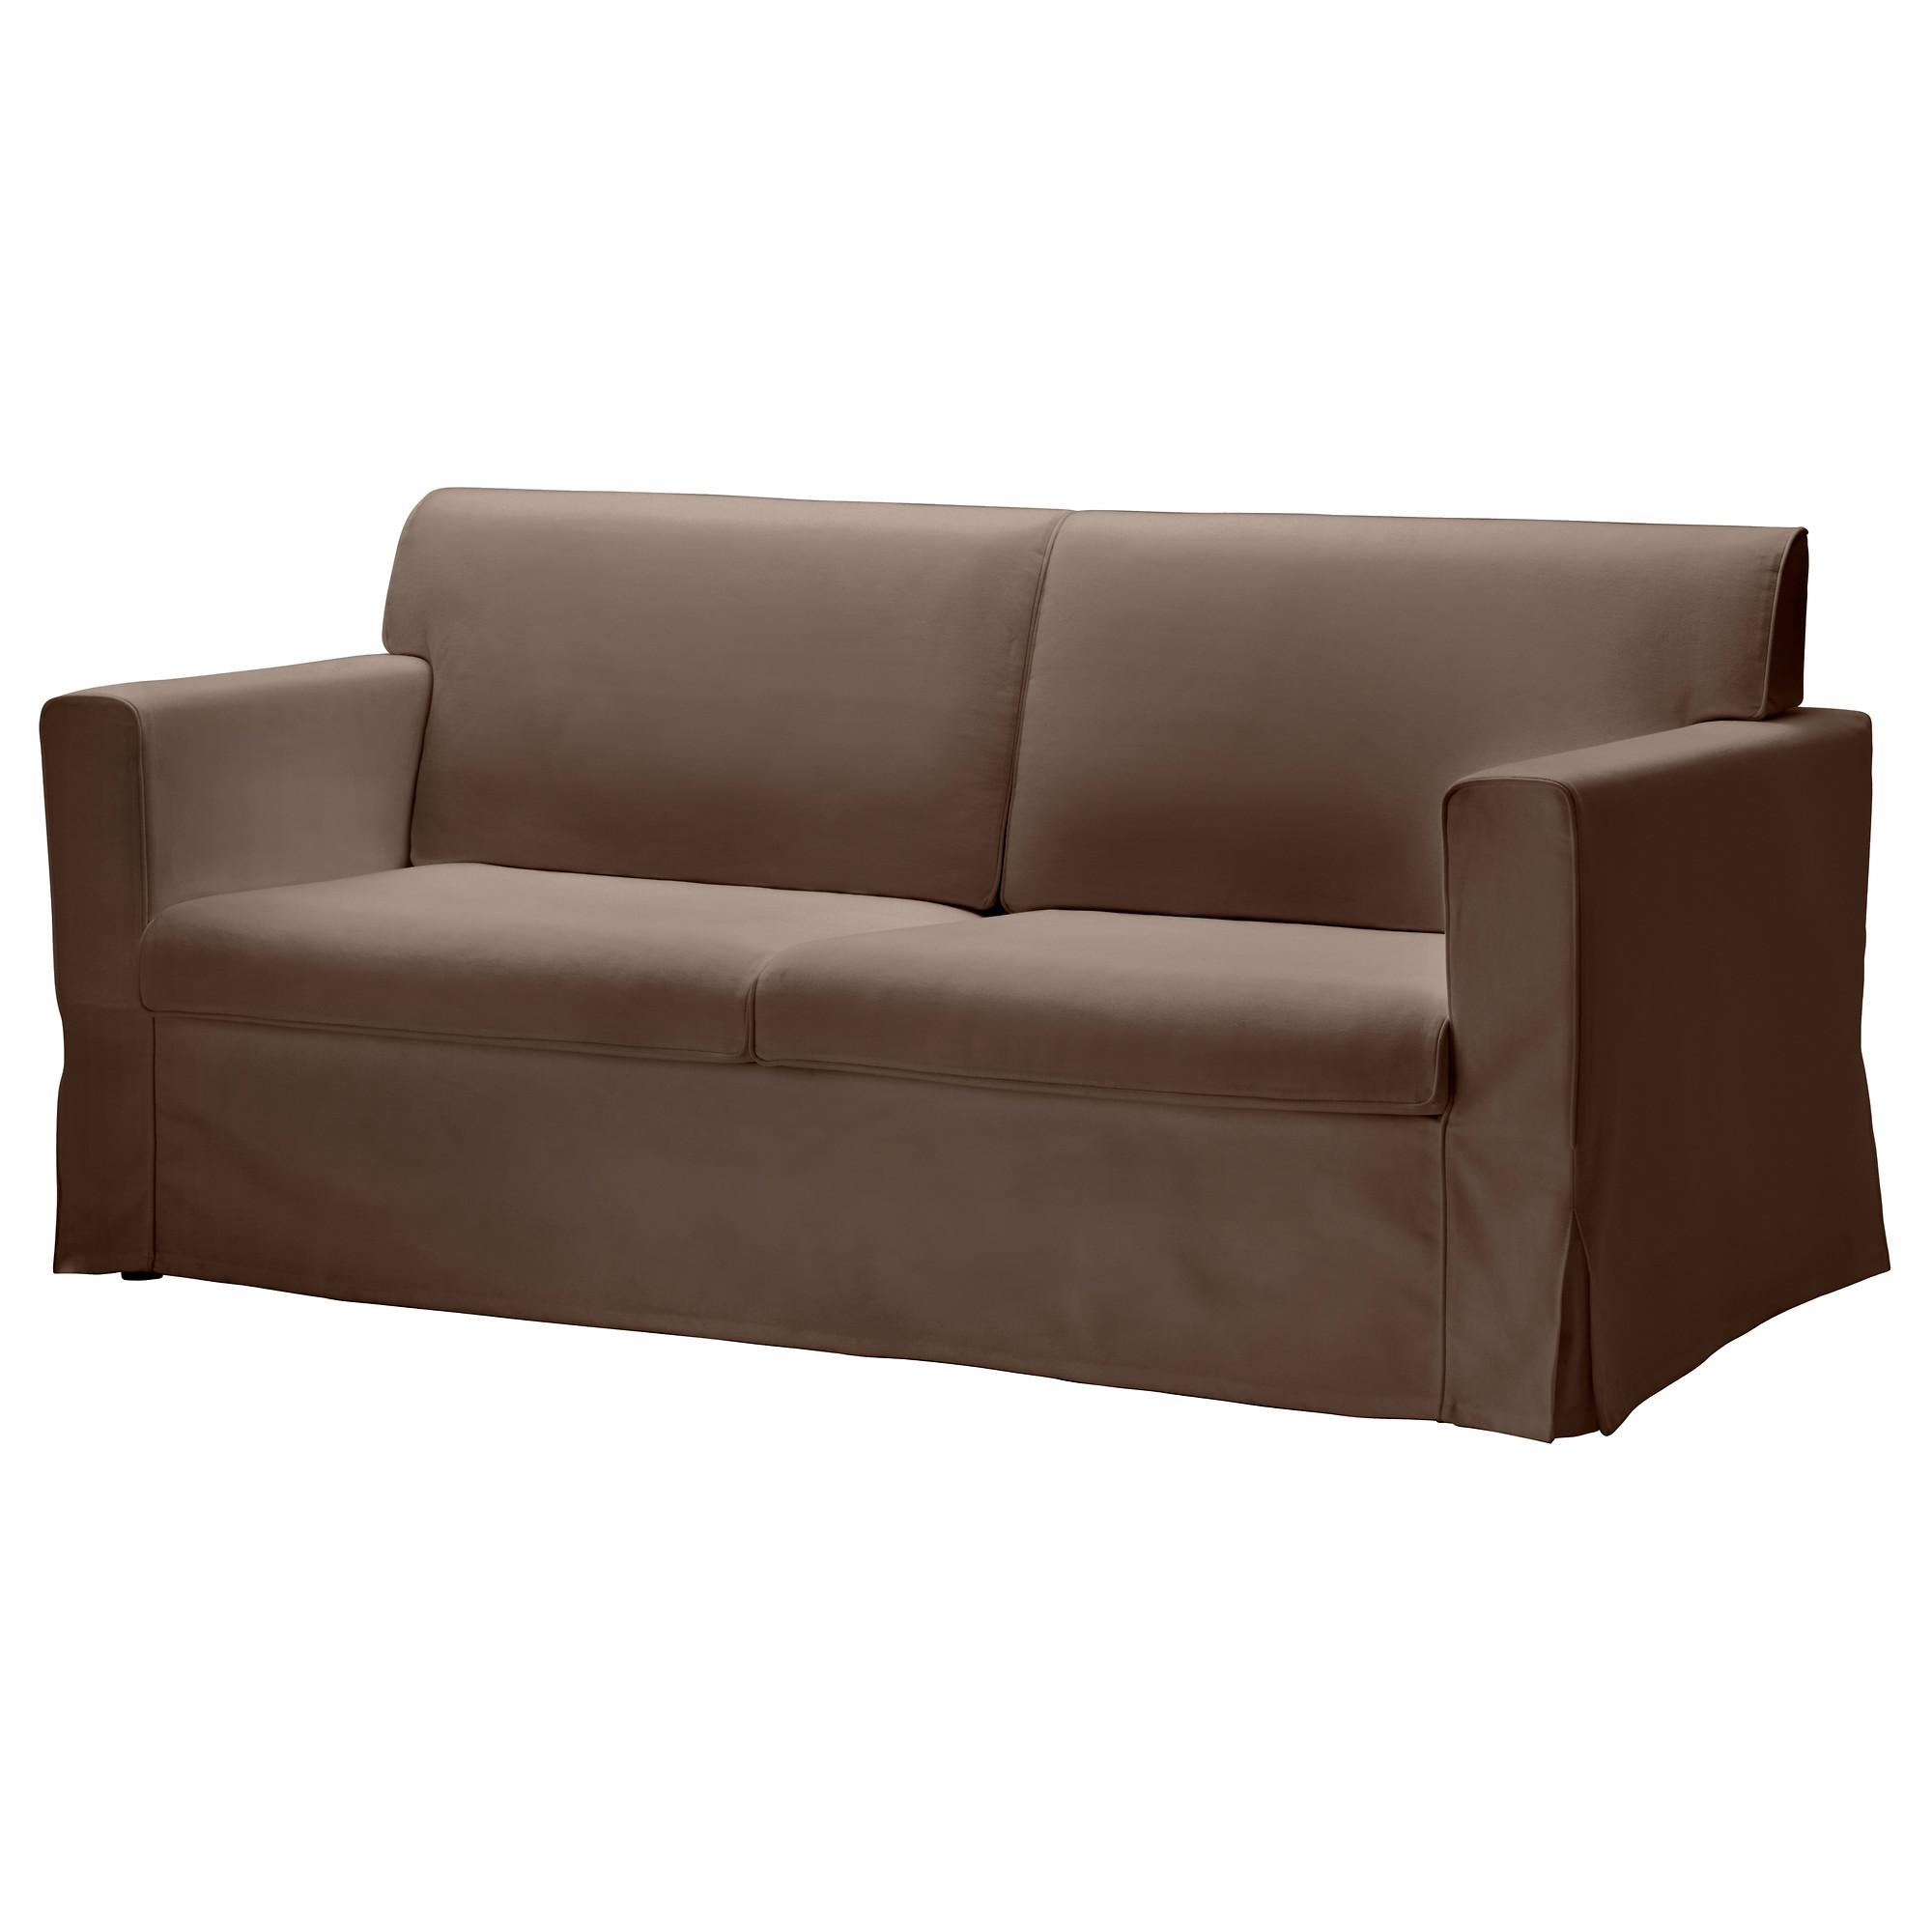 simple sofa 20 ideas of simple sofas sofa ideas 420